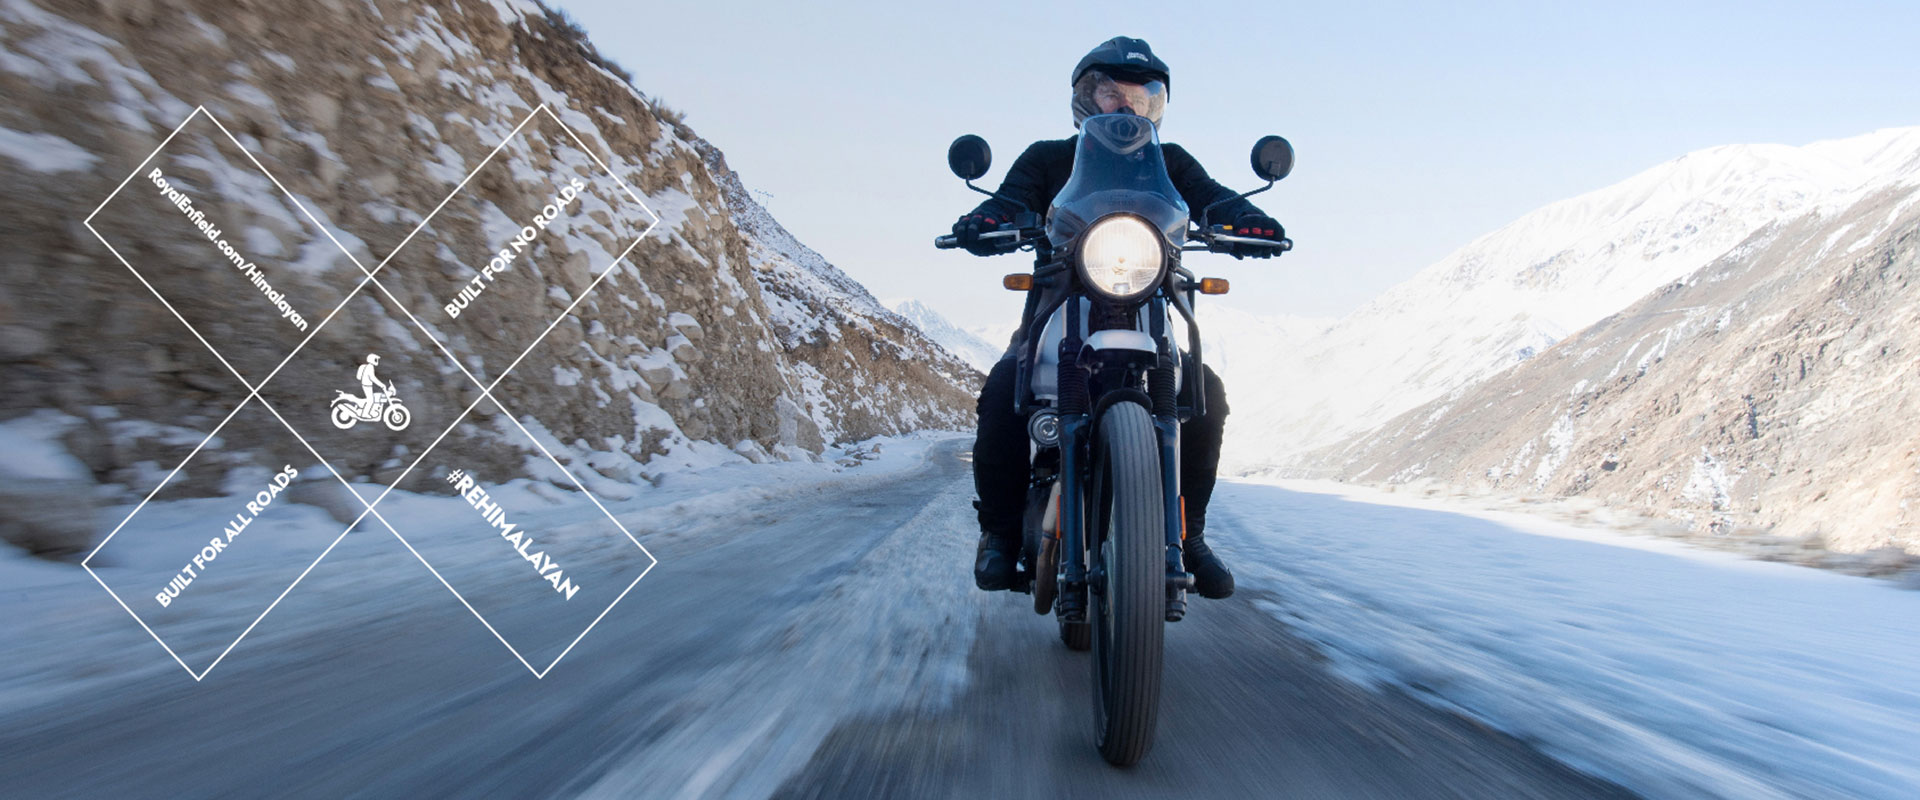 Through the ice and snow with the Royal Enfield Himalayan